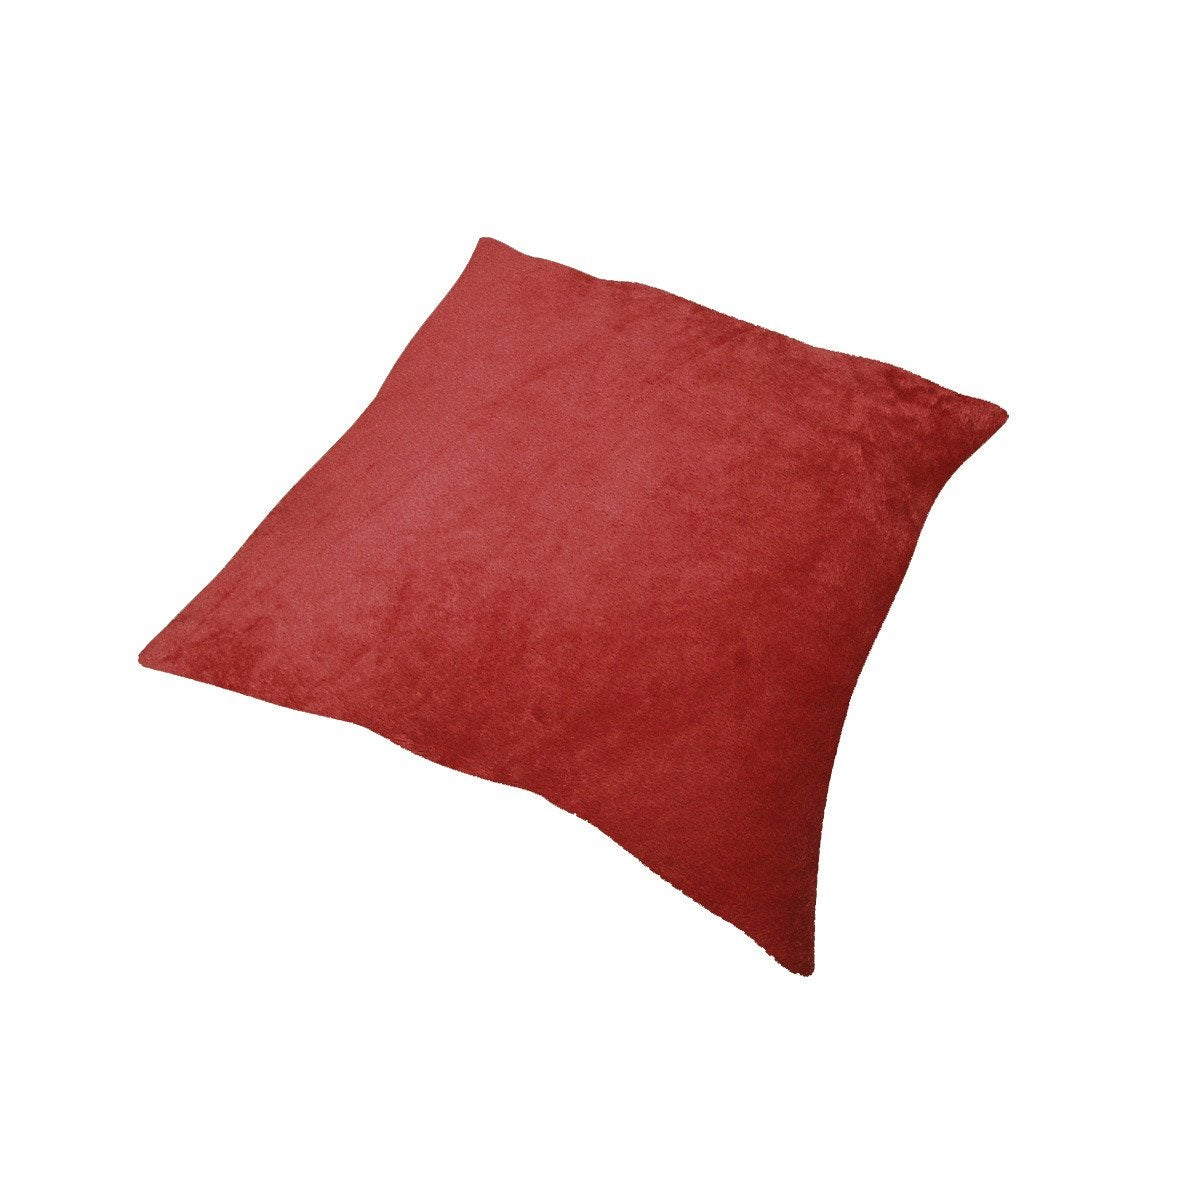 Coussin manchester inspire rouge rouge n 3 x cm leroy merlin - Leroy merlin coussin ...